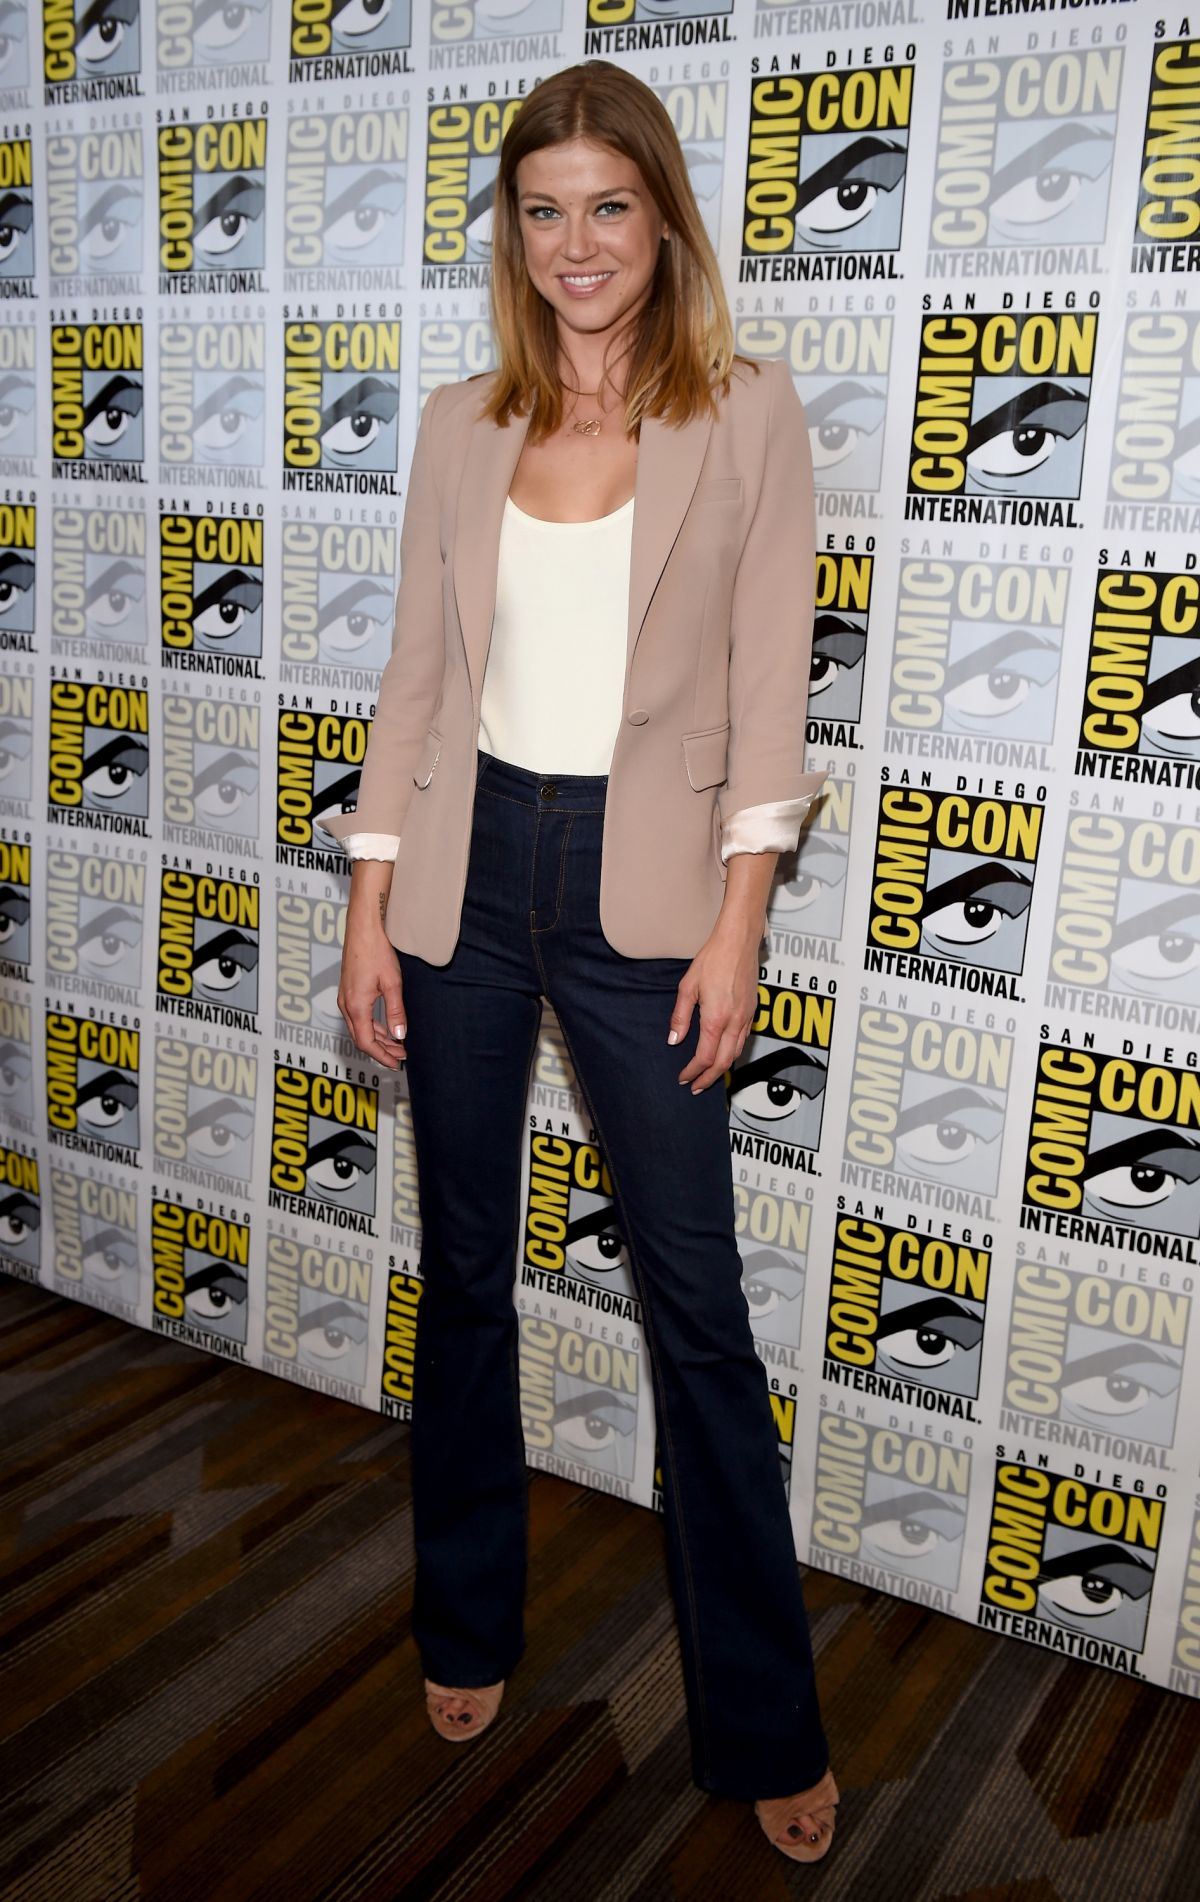 ADRIANNE PALICKI at The Orville Panel at Comic-con in San Diego 07/22/2017